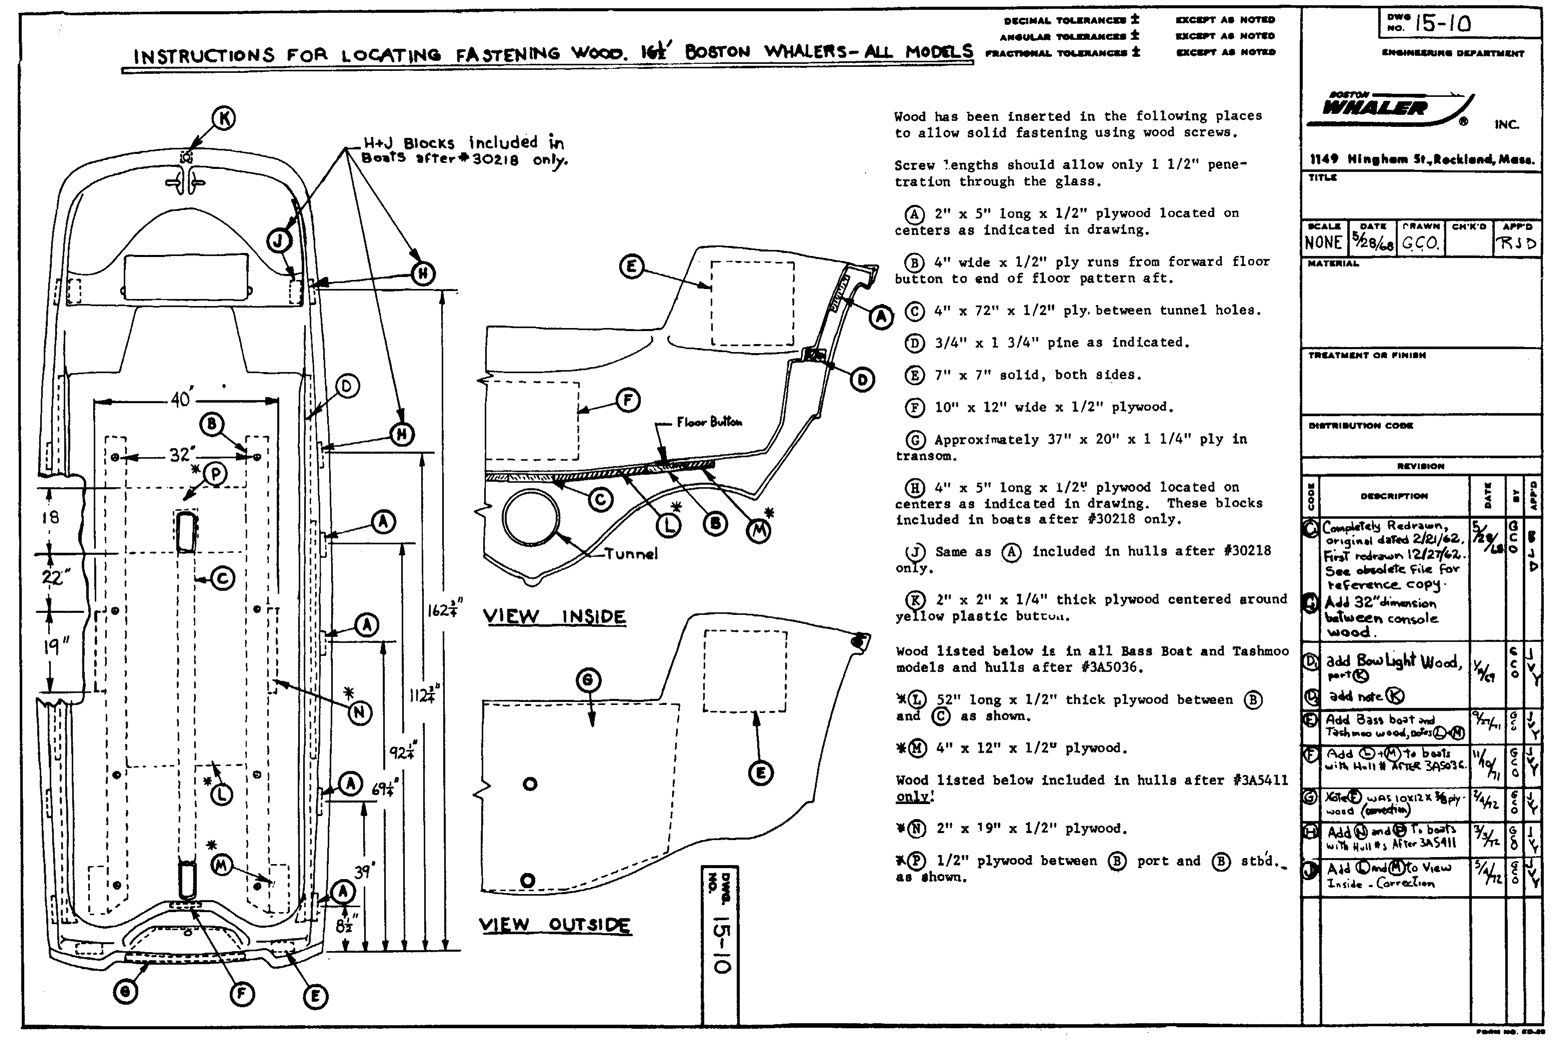 Crane Ignition Hi 6rc Wiring Diagram 36 Images Distributor Diagrams Construction 4 Installation Guide At